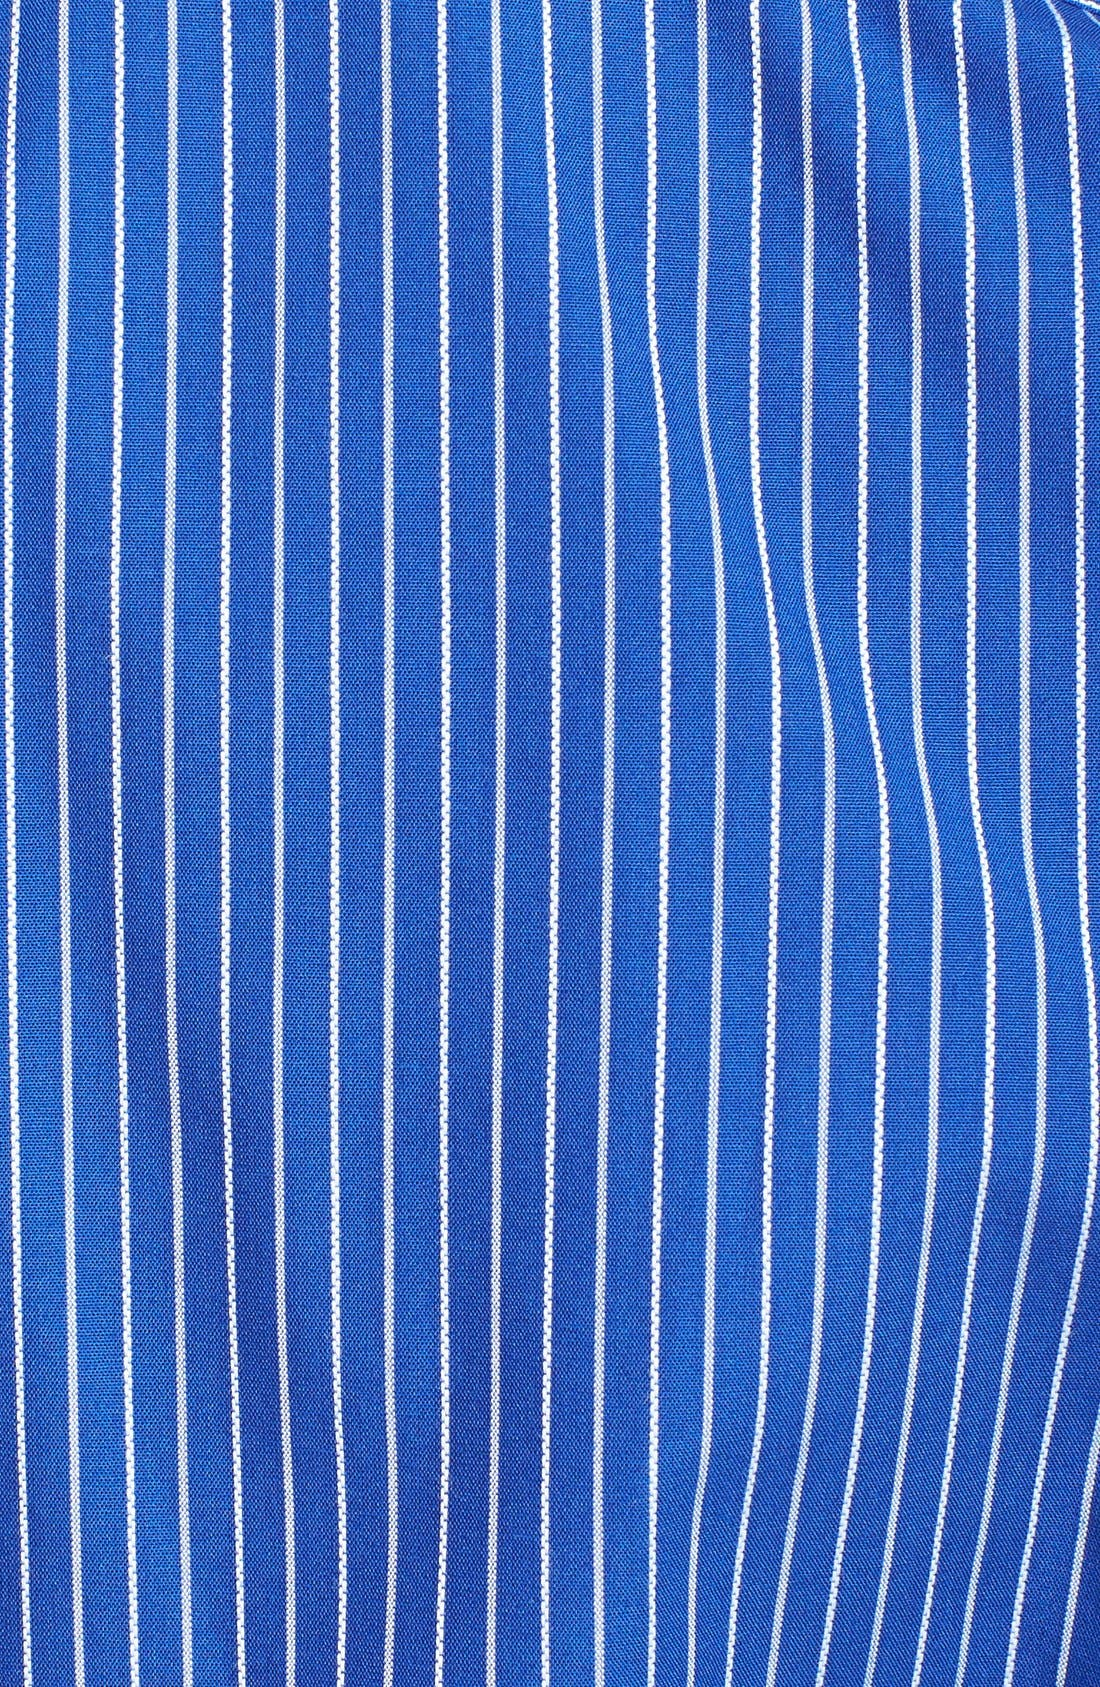 'Epic Easy Care' Classic Fit Vertical Pinstripe Wrinkle Resistant Sport Shirt,                             Alternate thumbnail 5, color,                             460